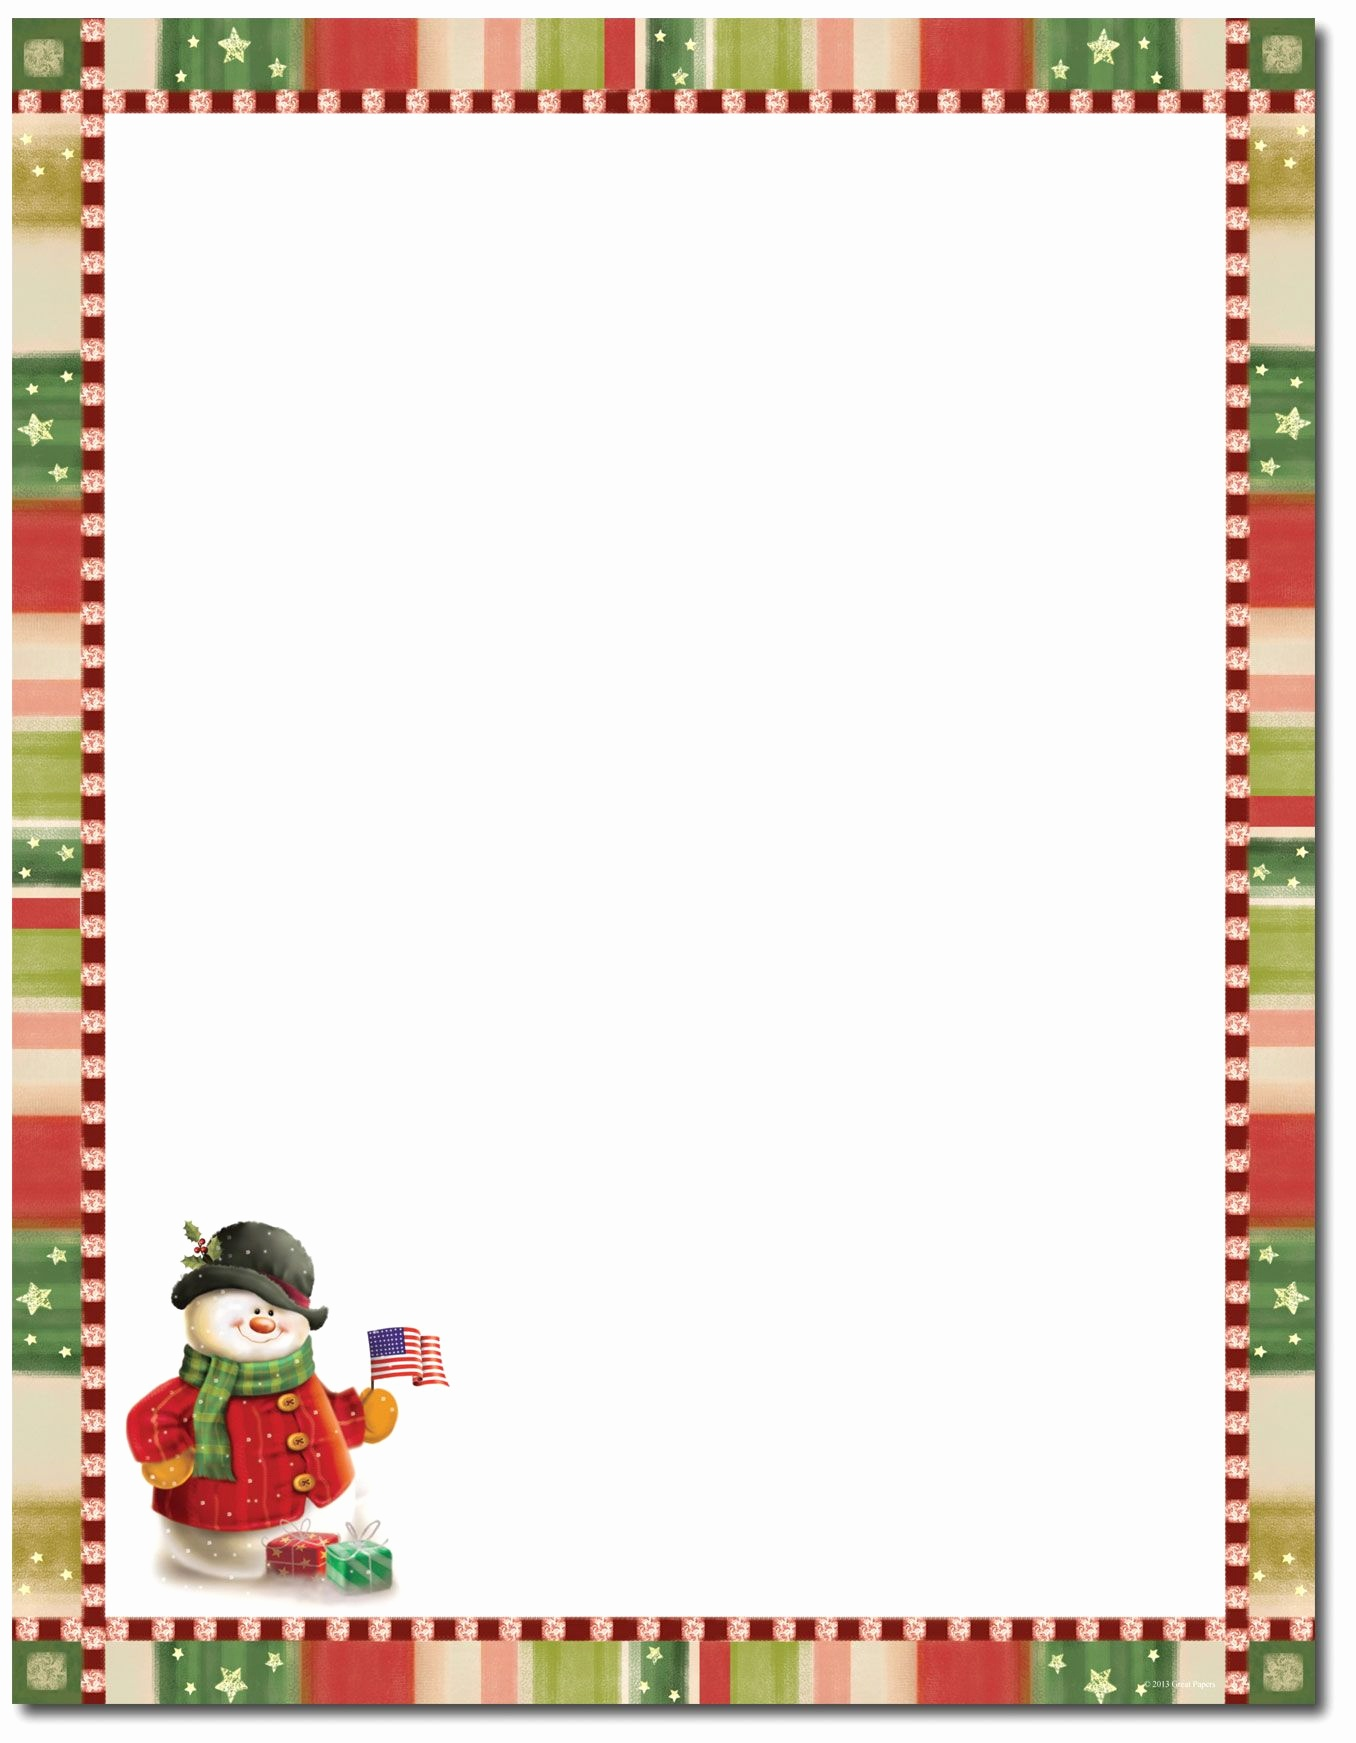 Free Printable Santa Letterhead Paper Christmas Stationery Home - Free Printable Christmas Stationery Paper